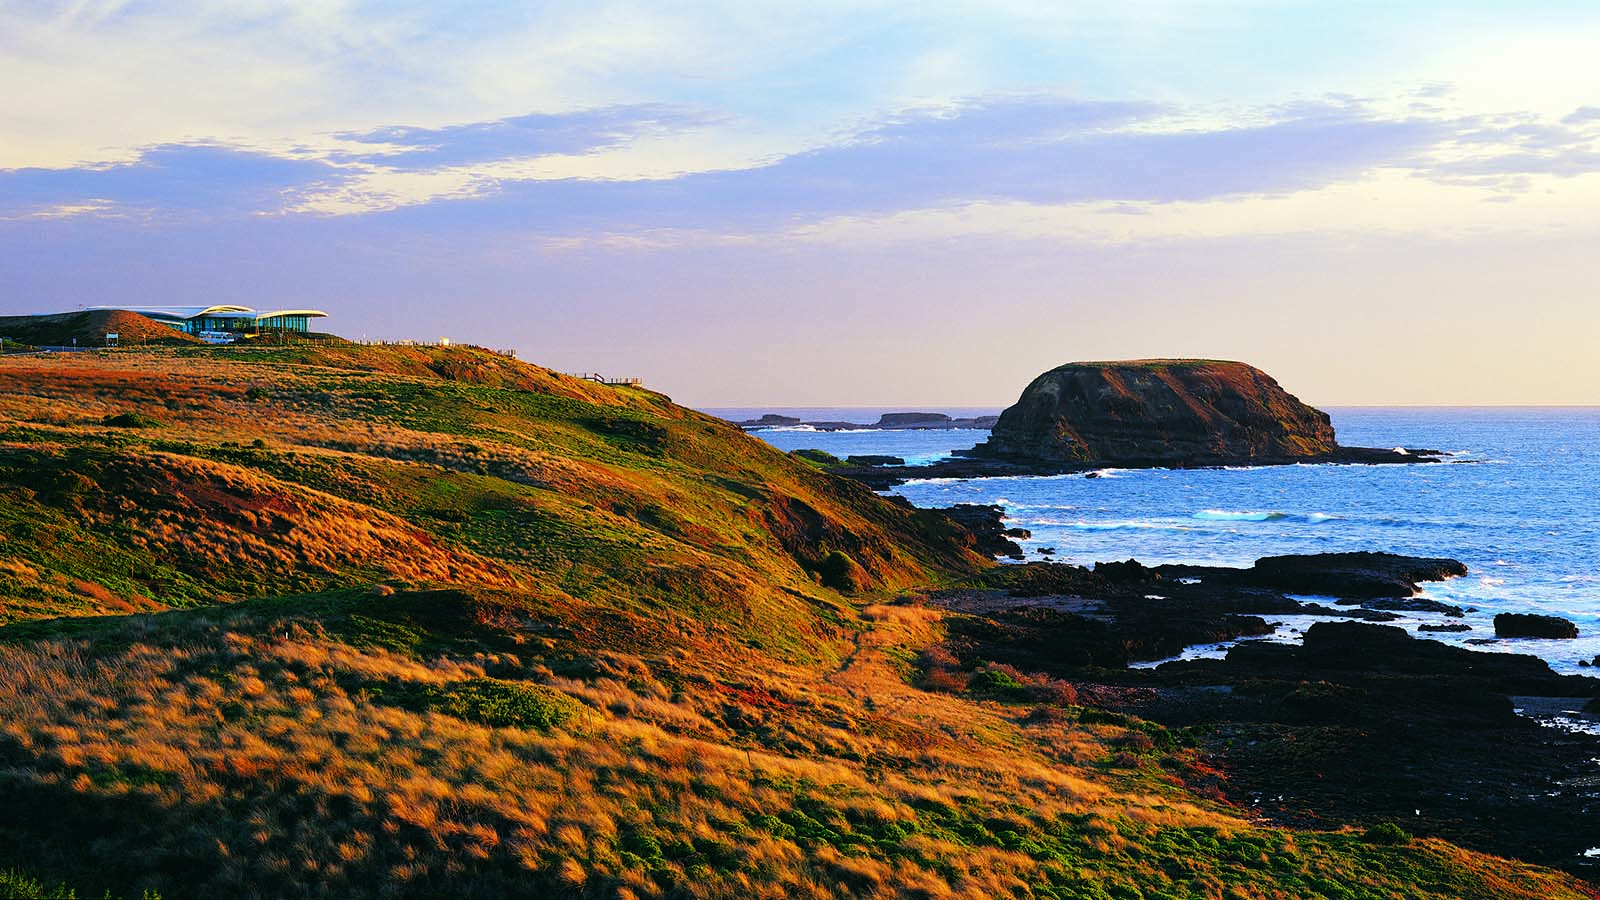 The Nobbies, Phillip Island, Victoria, Australia